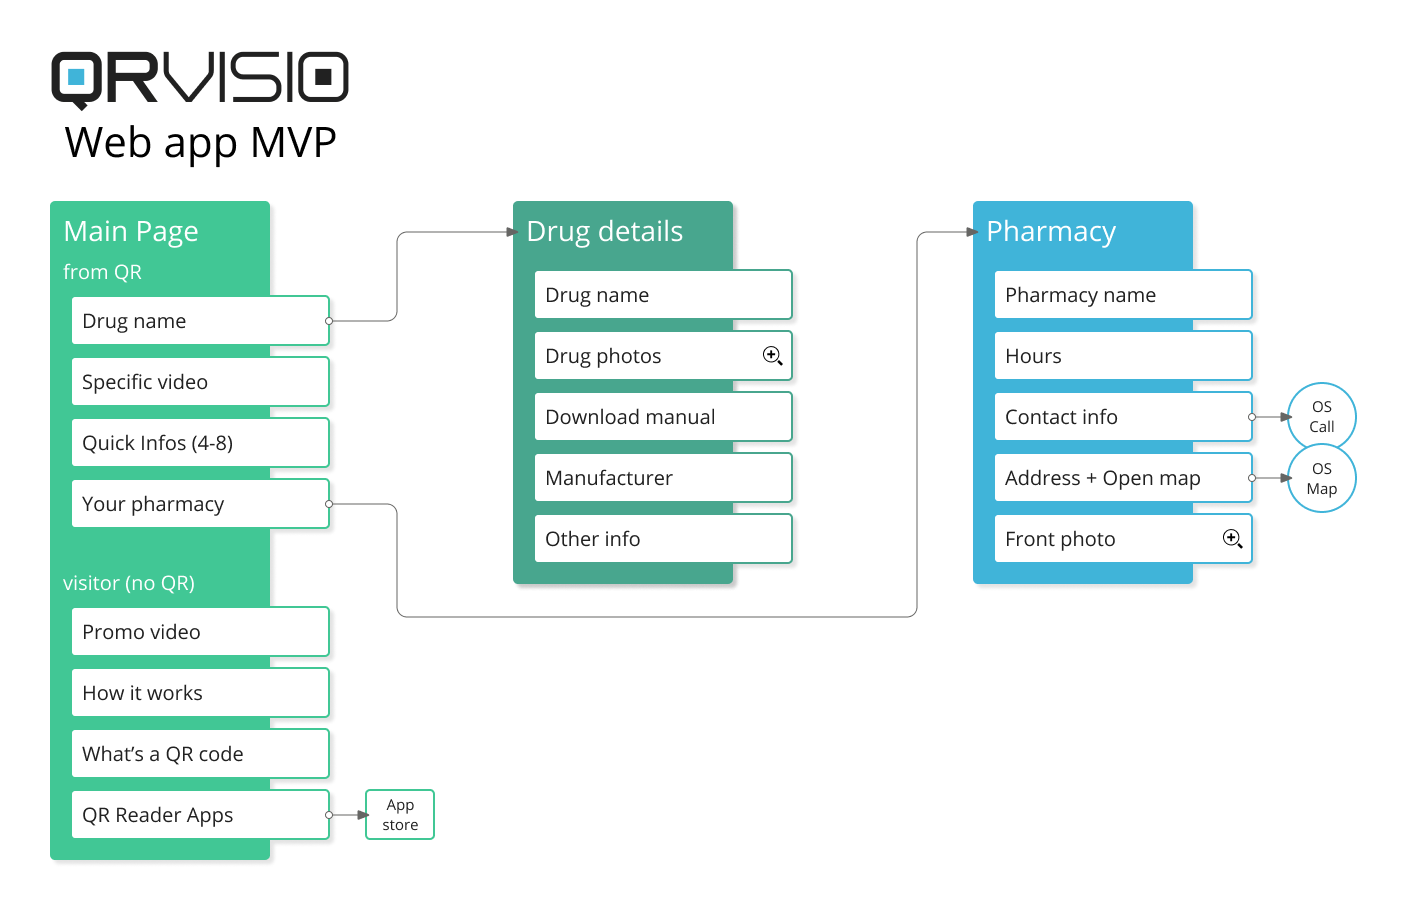 The final MVP functionality map